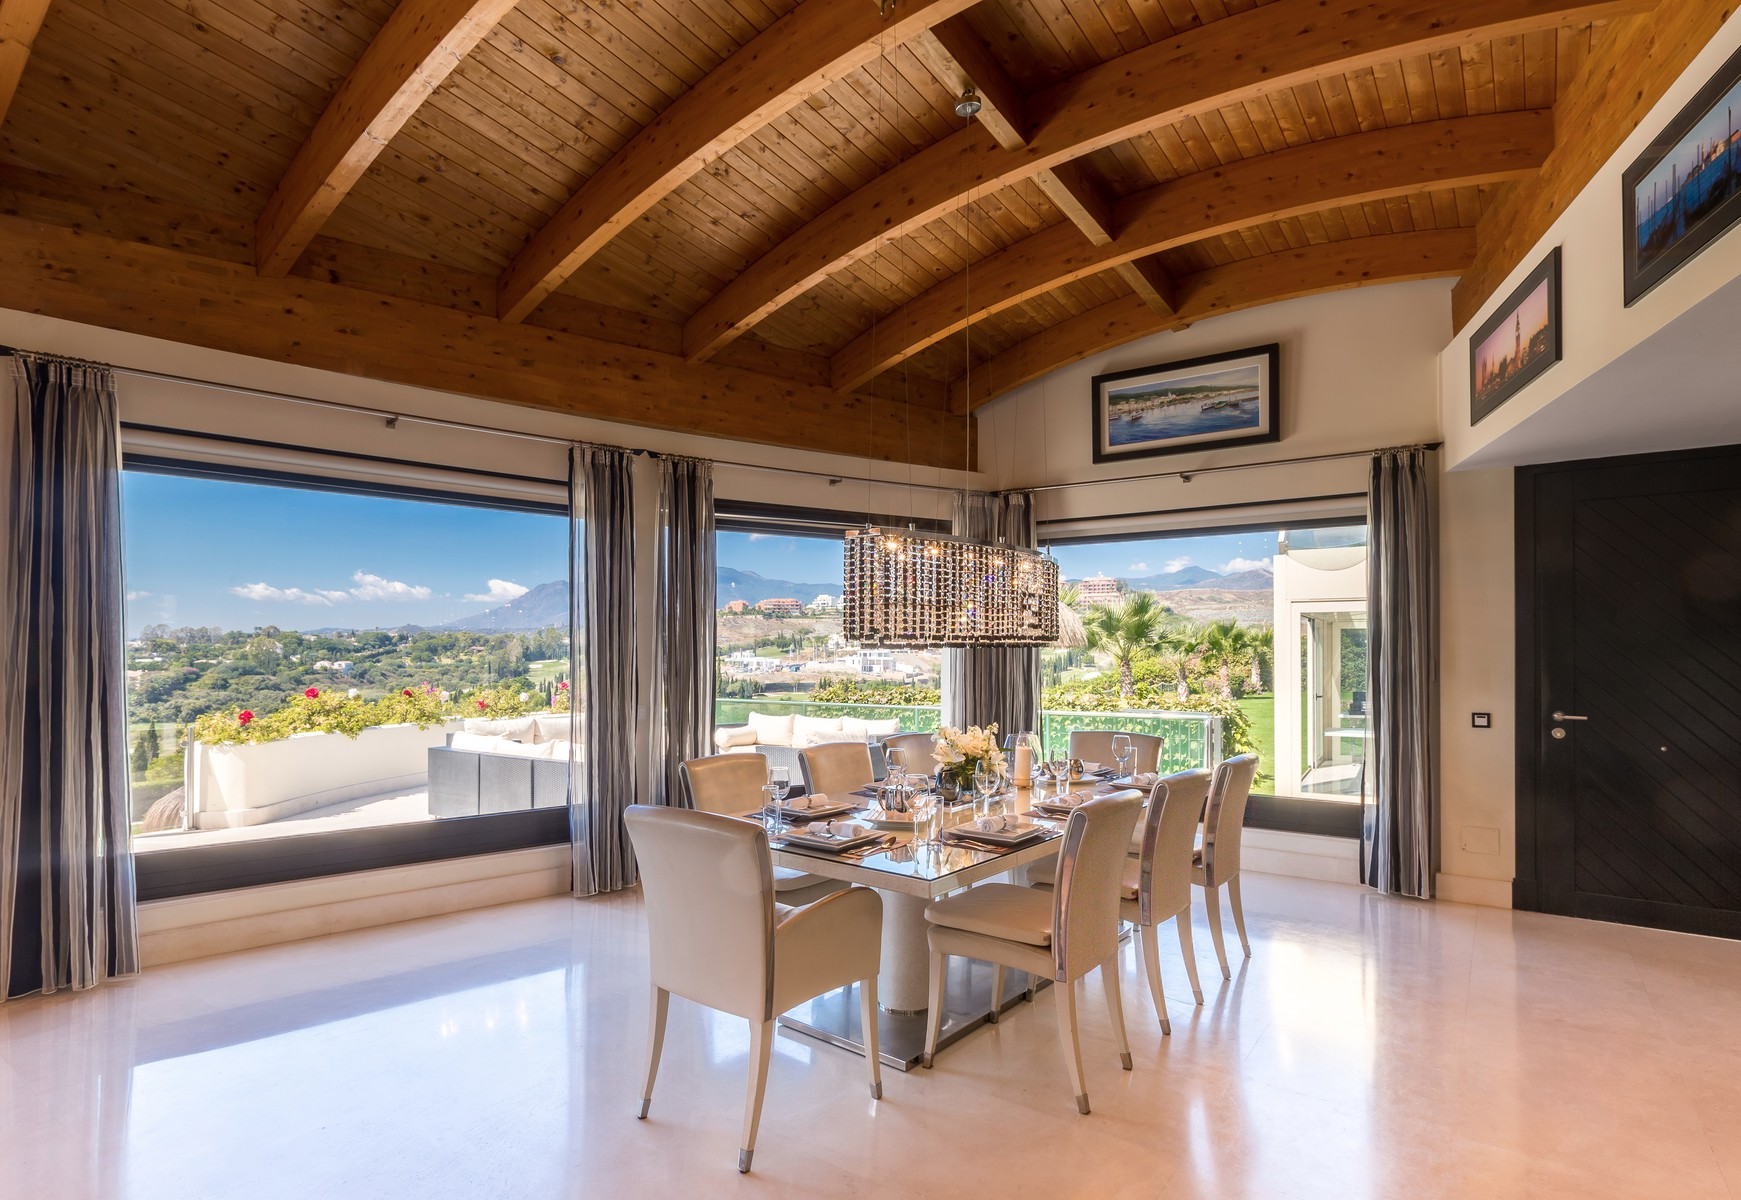 13-villa-el-cano-dining-with-view